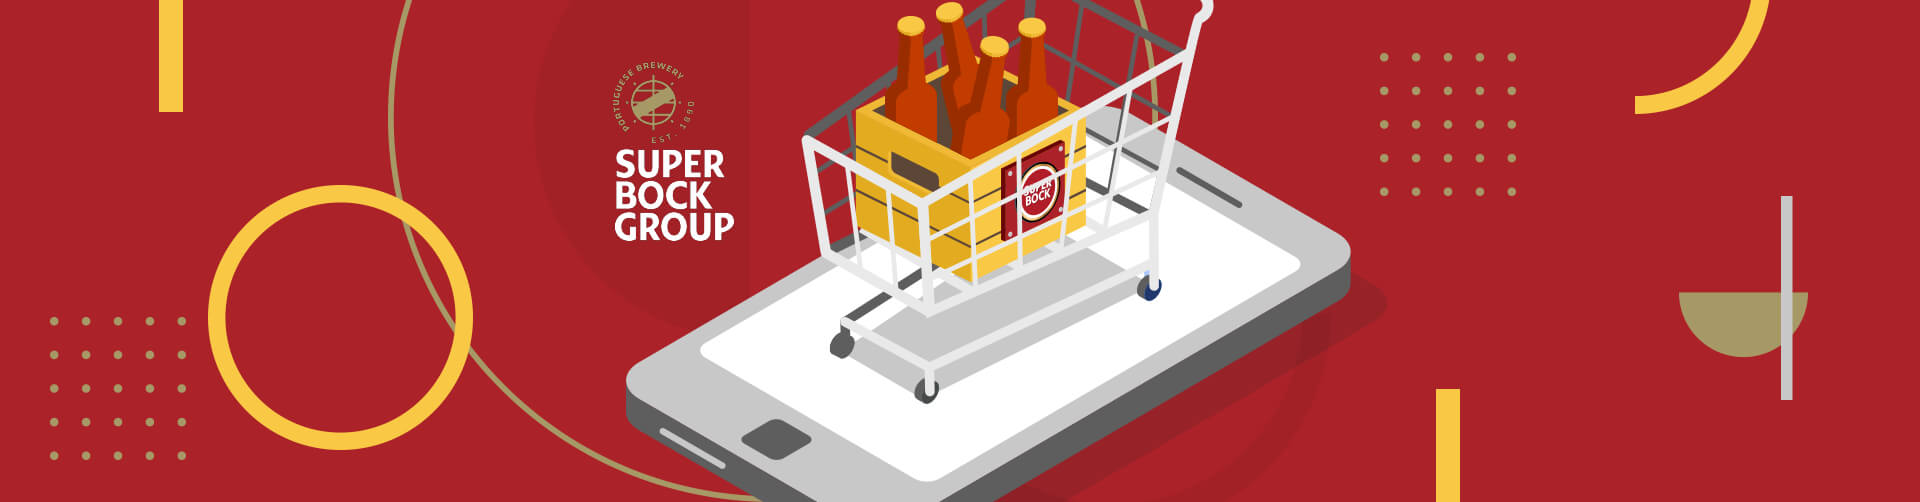 Super Bock Group - Online Pack Standardization